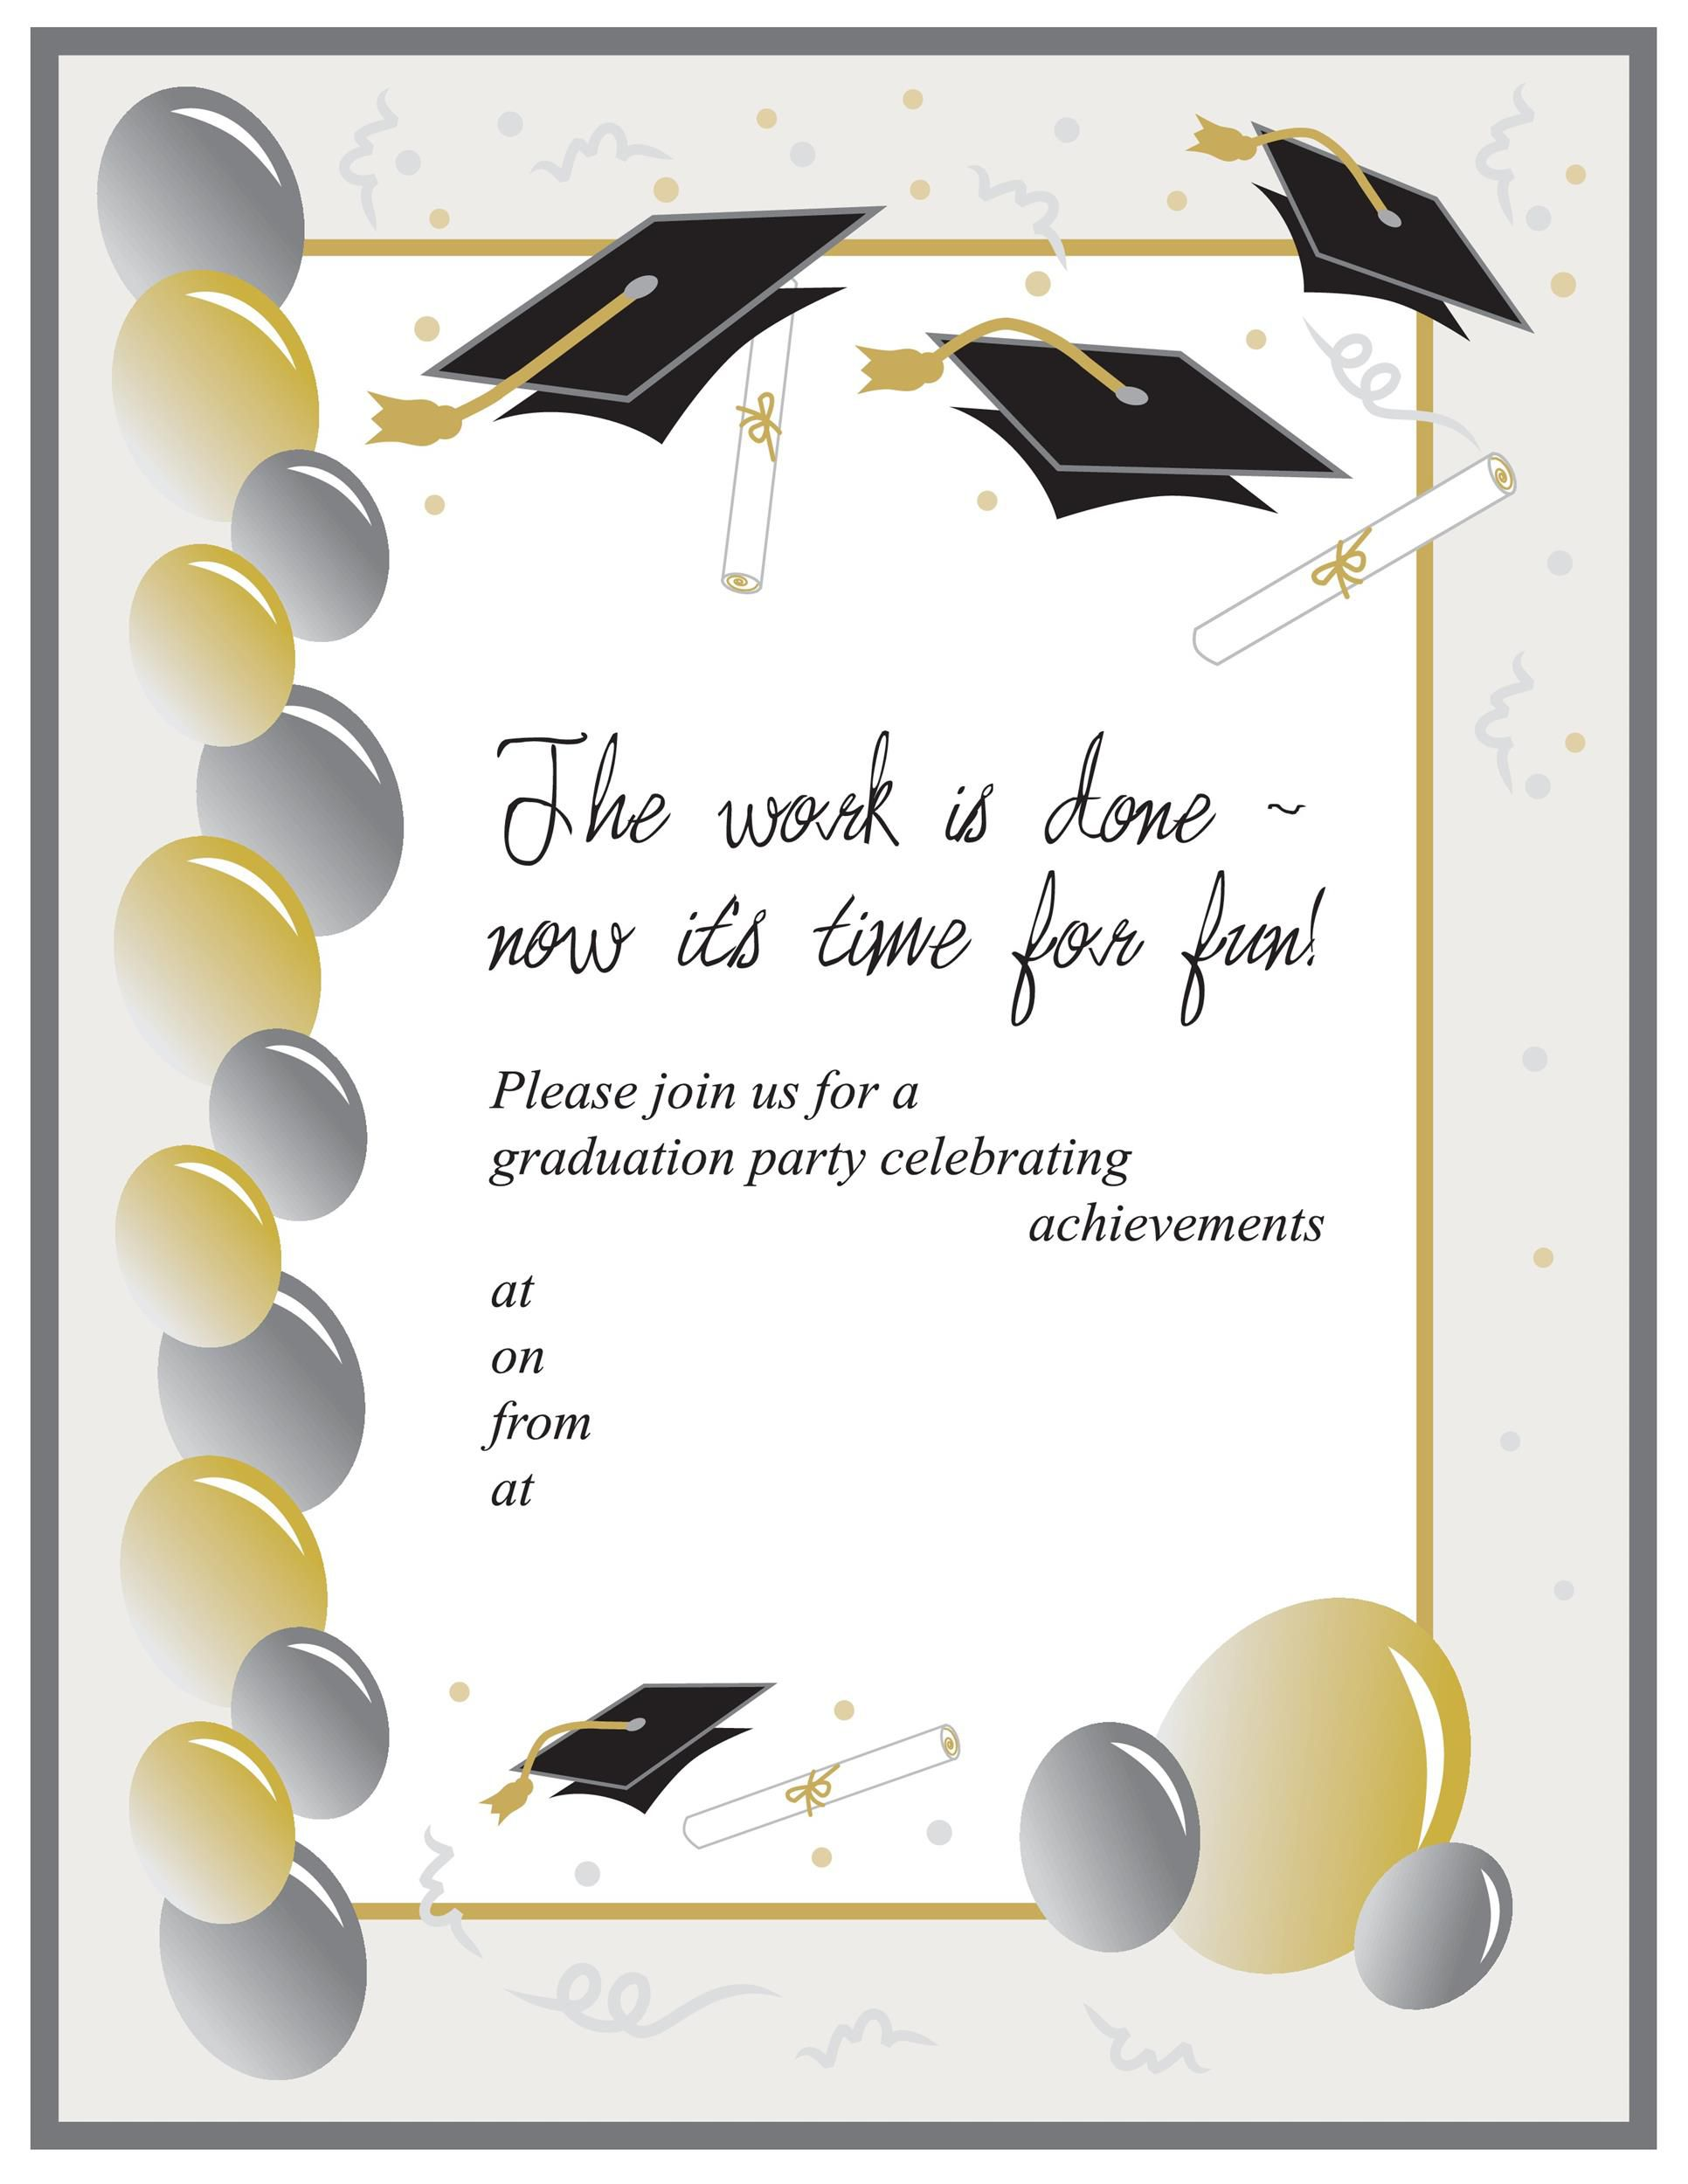 005 Unbelievable Graduation Party Invitation Template Inspiration  Templates 4 Per Page Free ReceptionFull